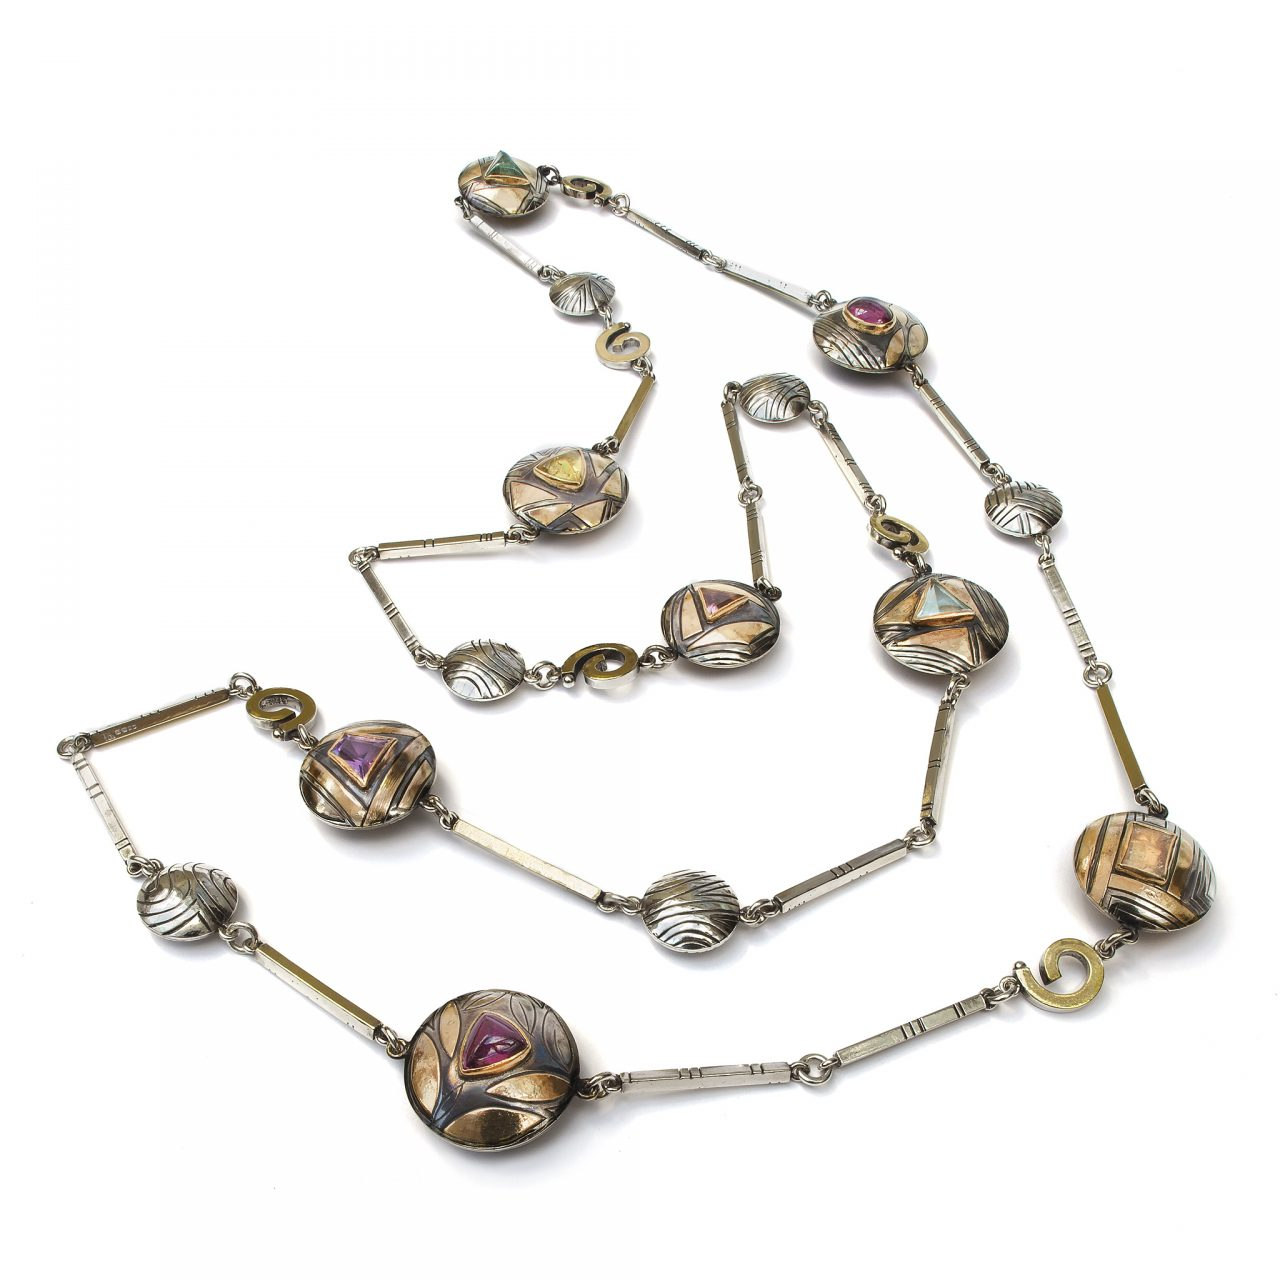 Necklace with Citrine, Aquamarine, Garnet, Tourmaline and Iolite